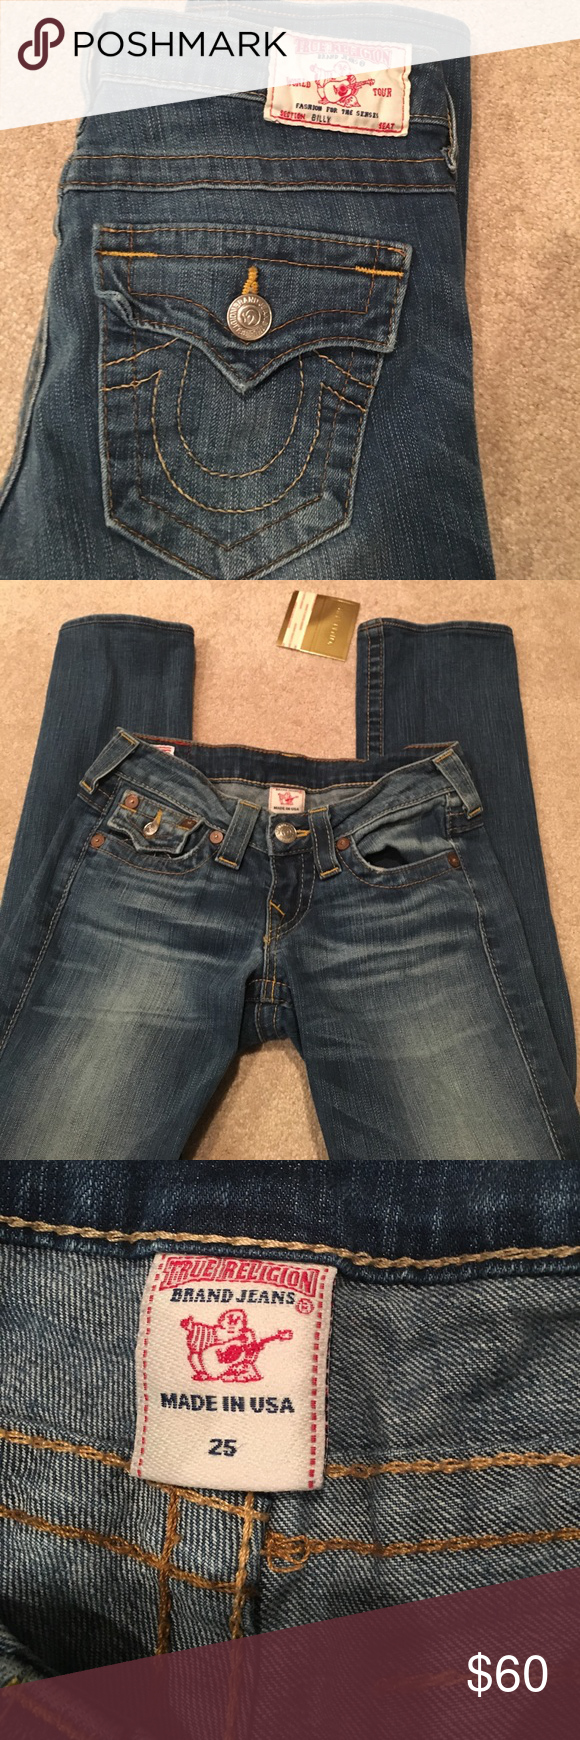 True religion jeans True religion jeans that unfortunately don't fit me anymore! Authentic. Lightwash, super cute and in great condition :) let me know if you're interested. Willing to negotiate! True Religion Jeans Straight Leg